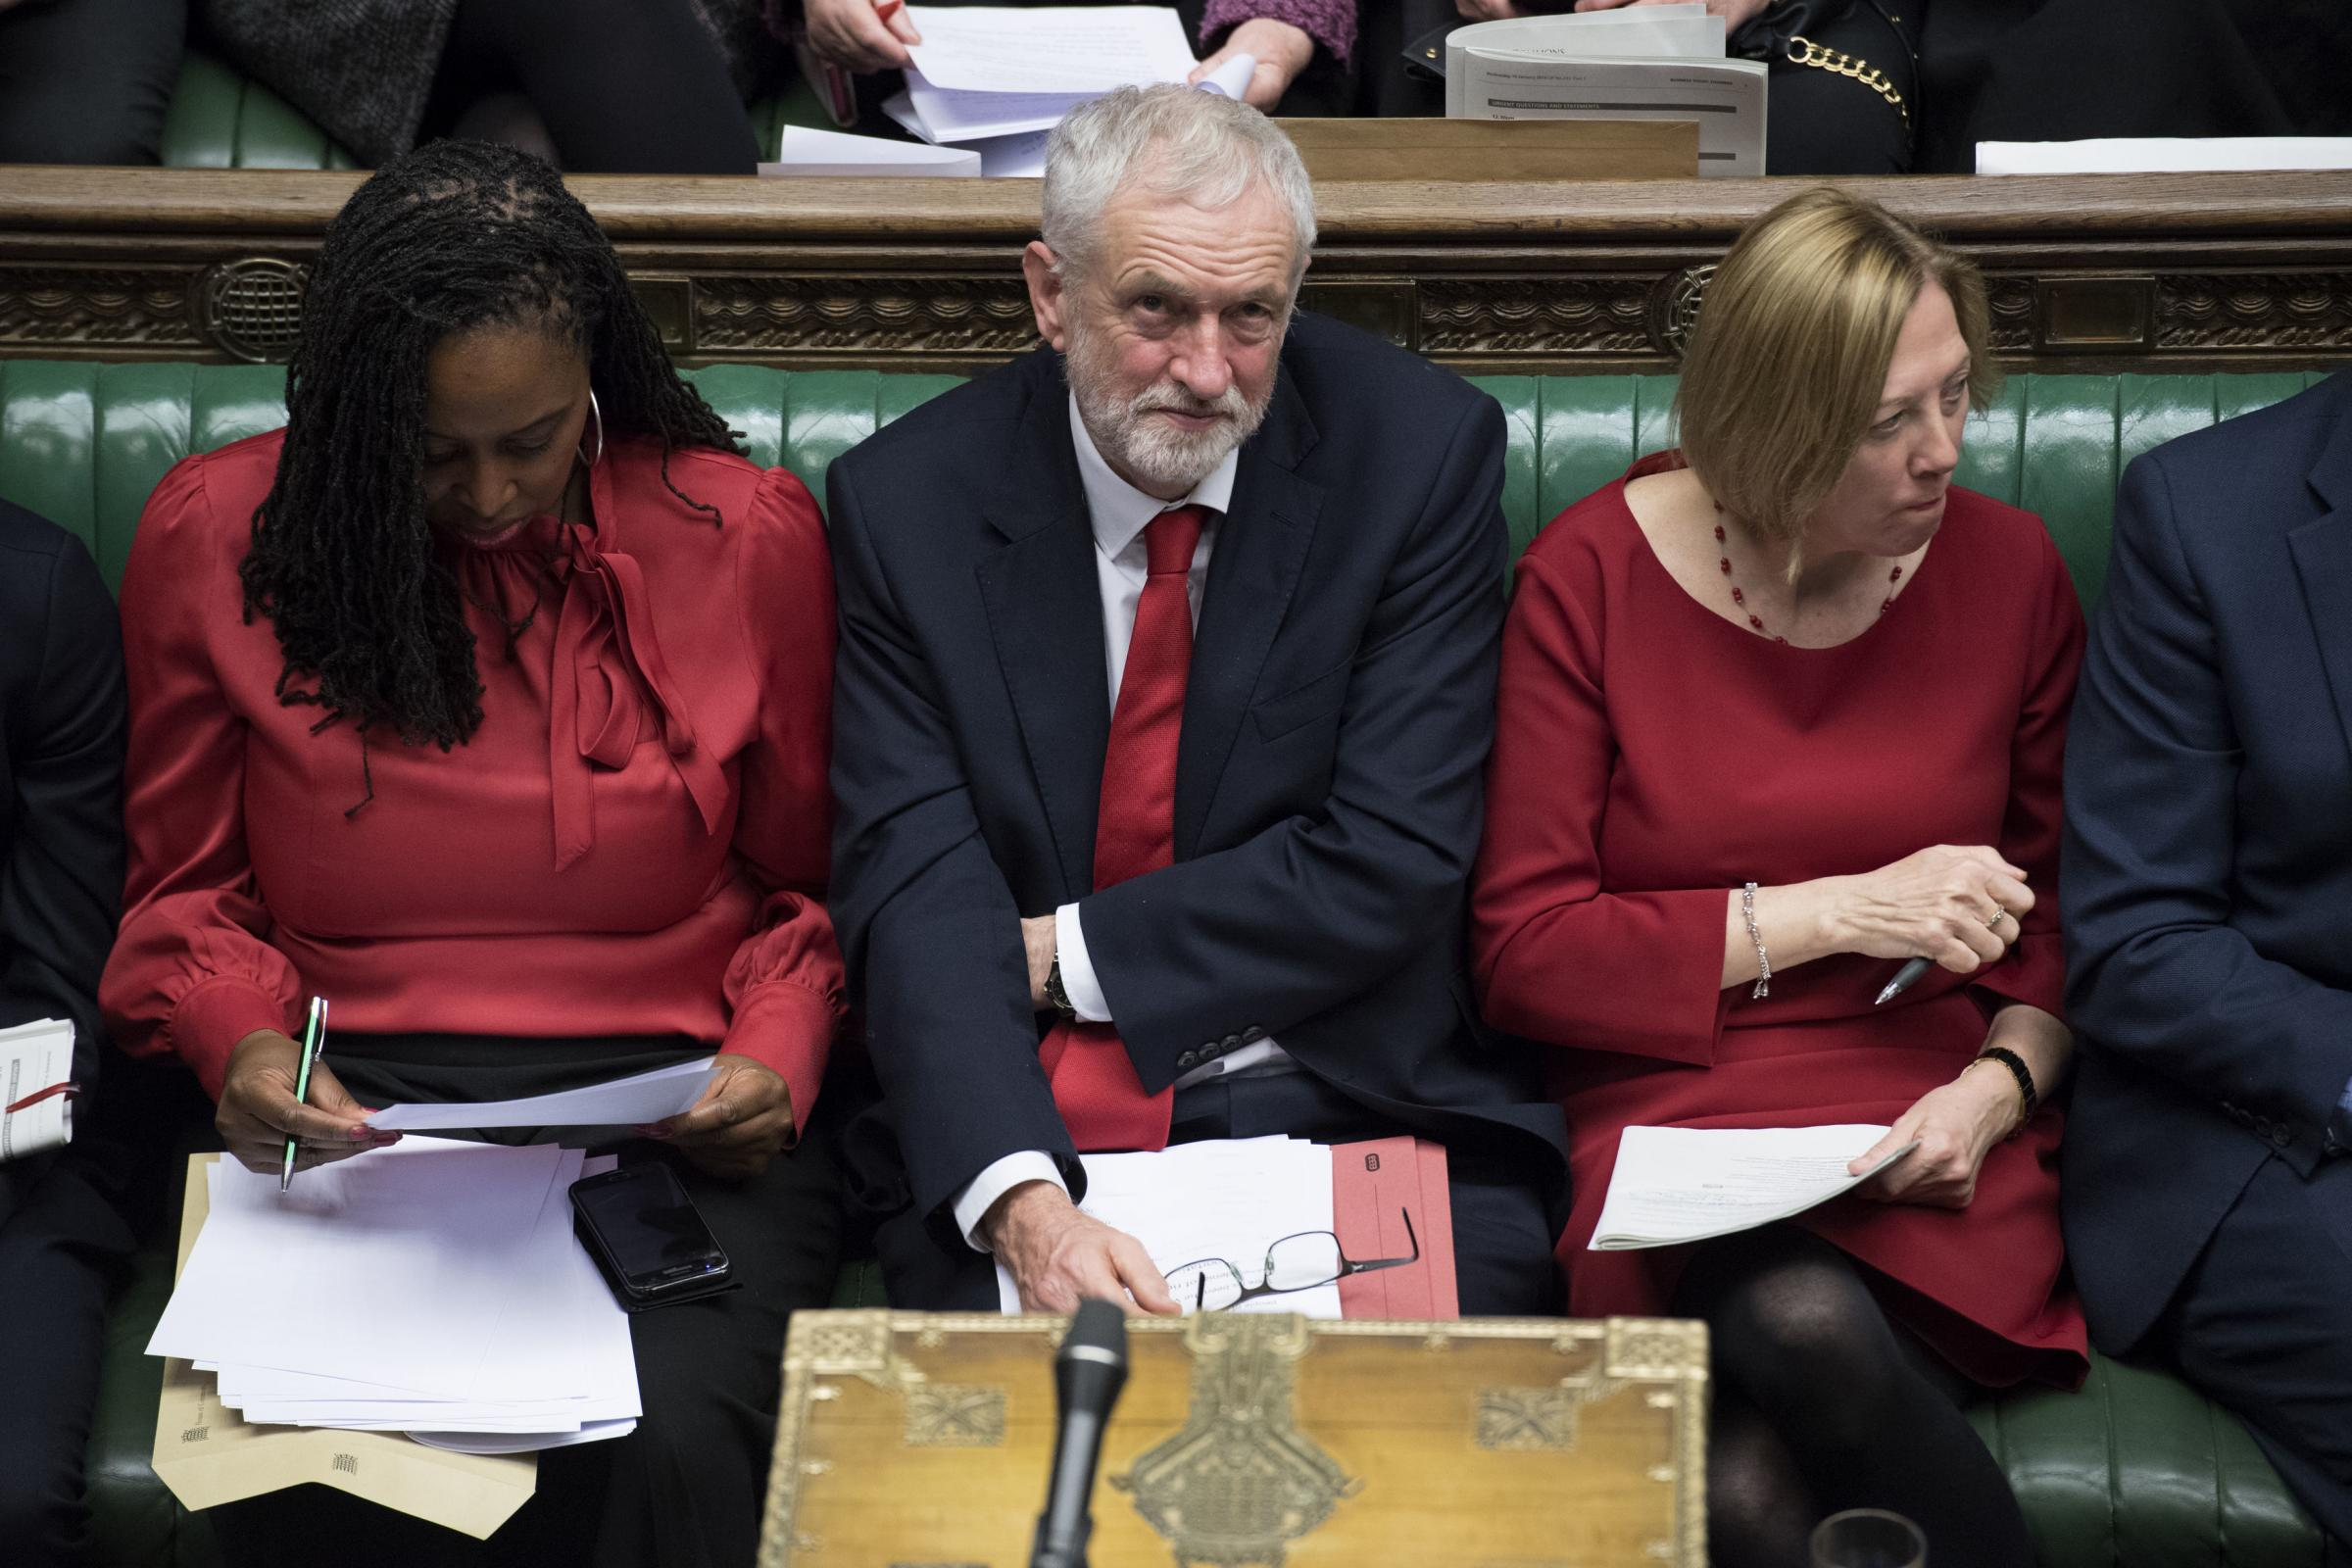 PMQs: Jermey Corbyn says Government is